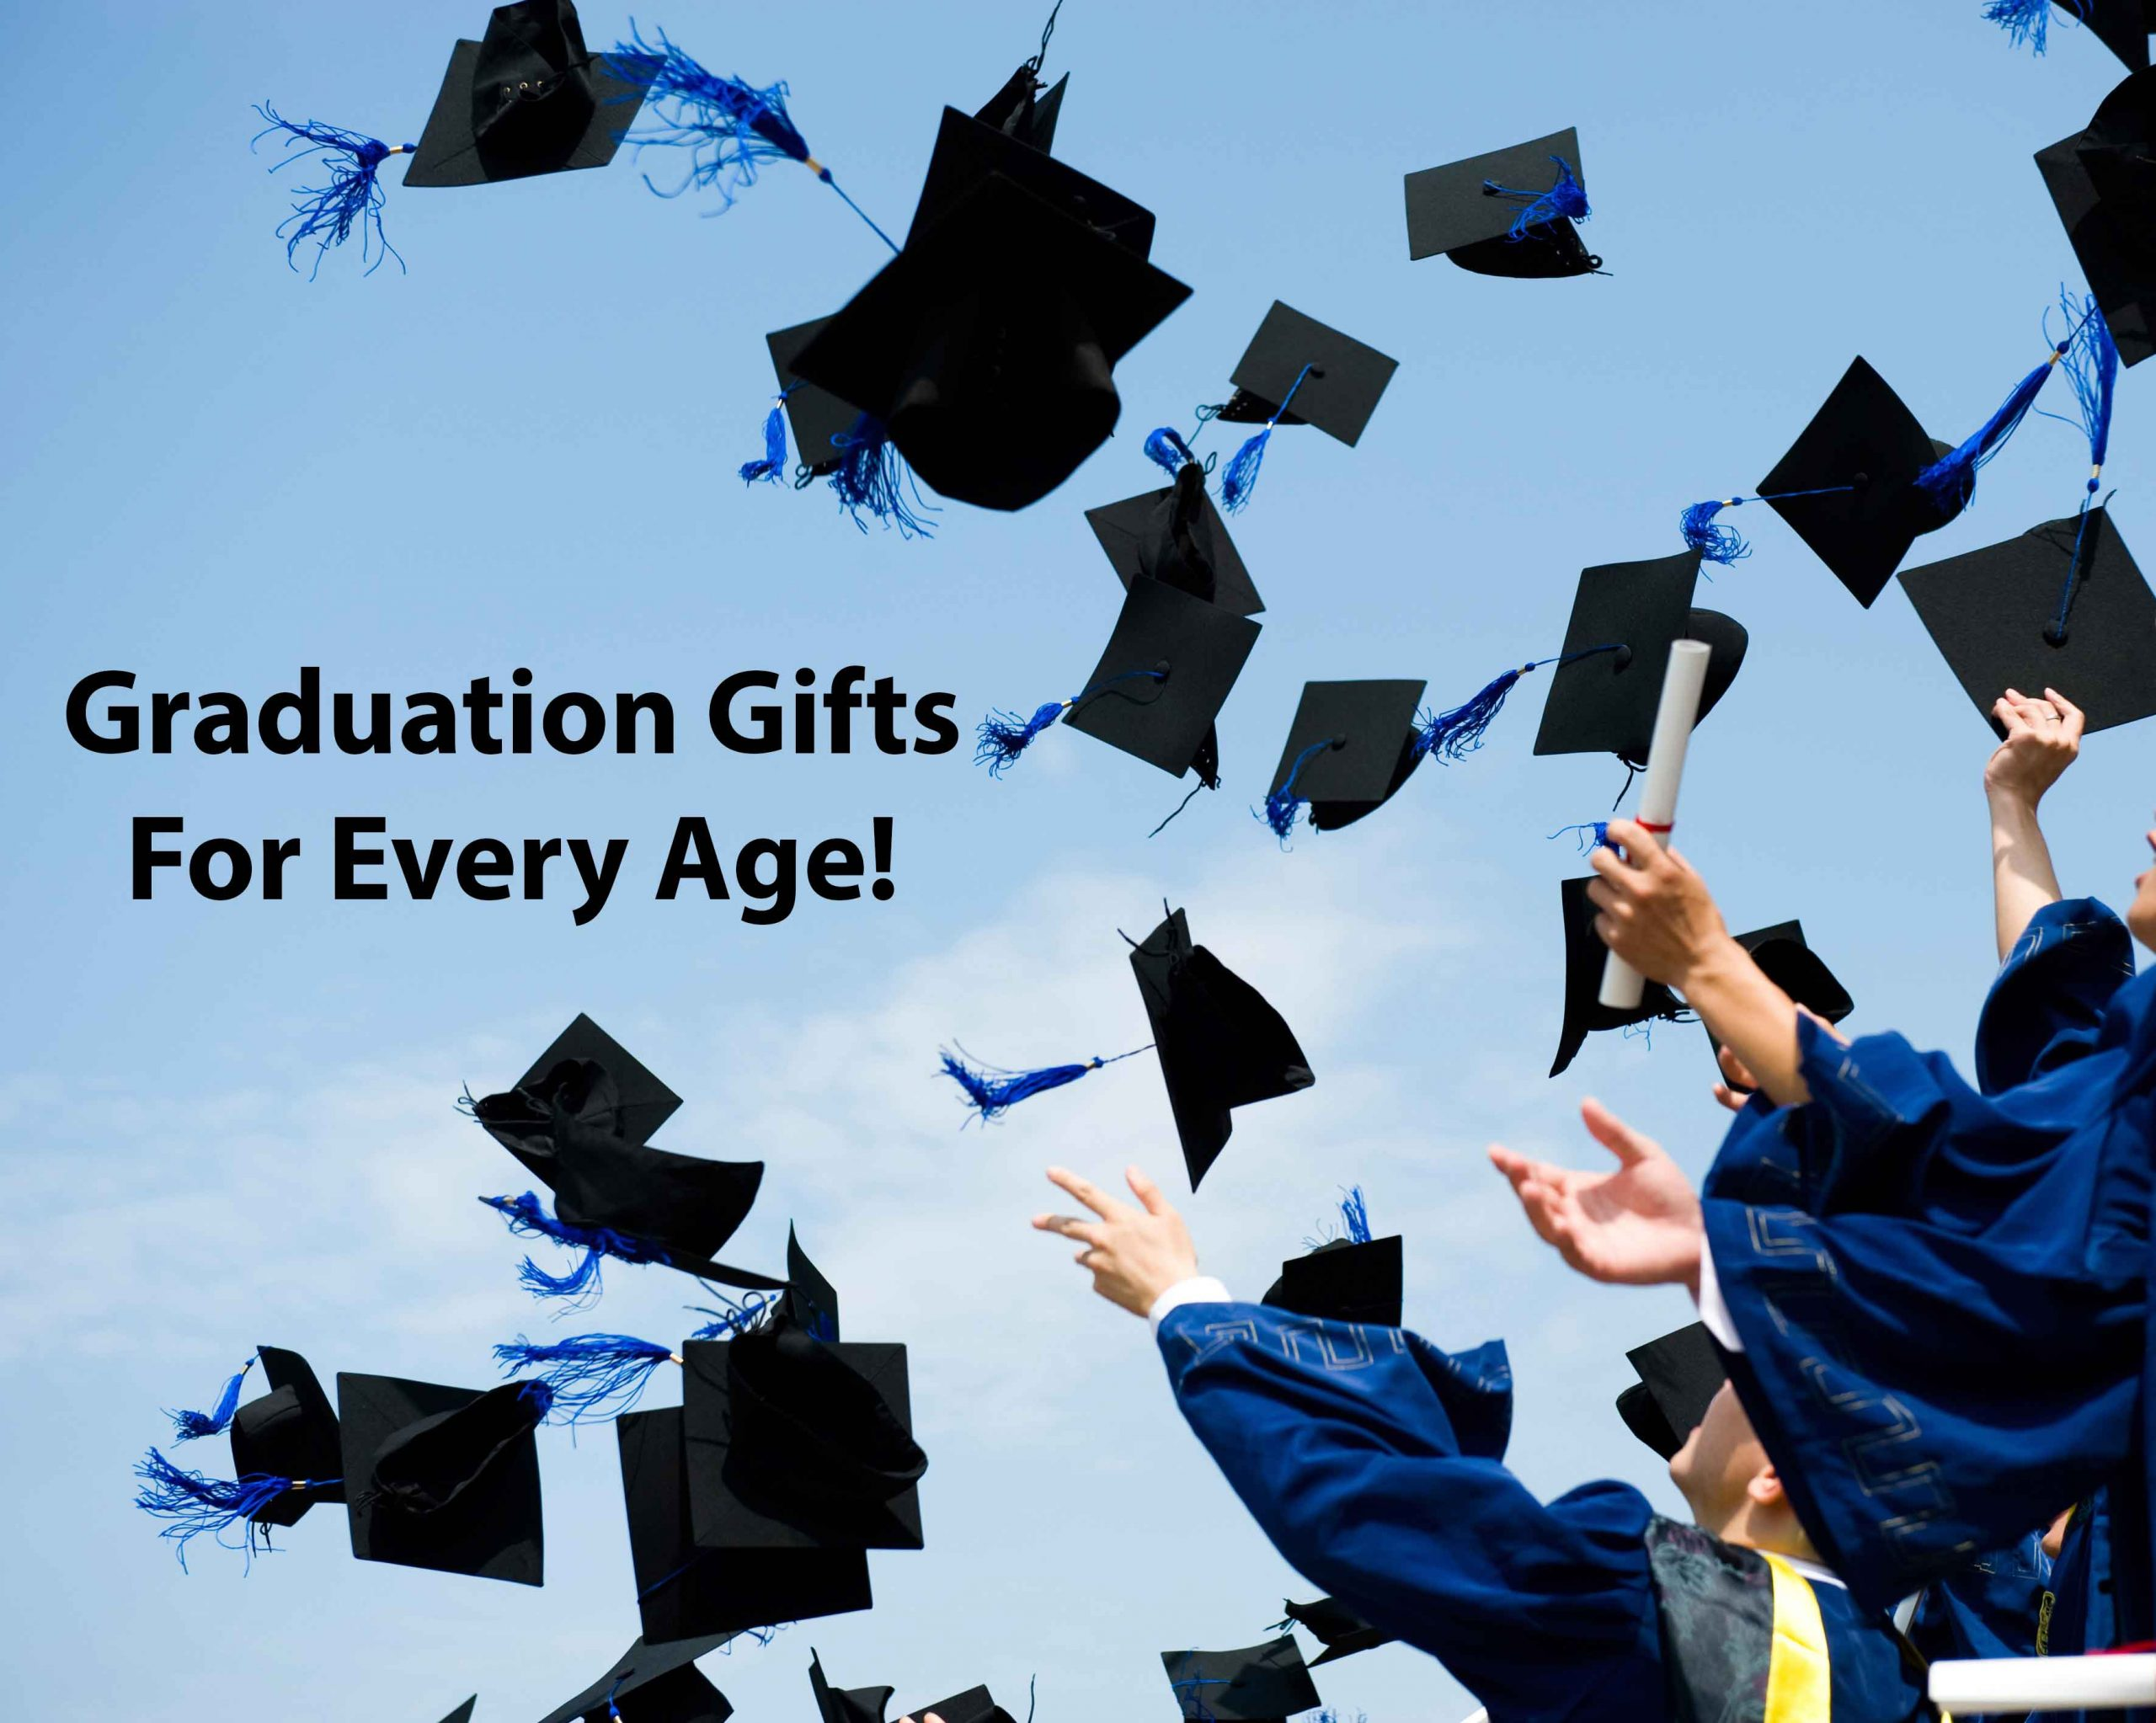 Graduation Gifts for Every Age